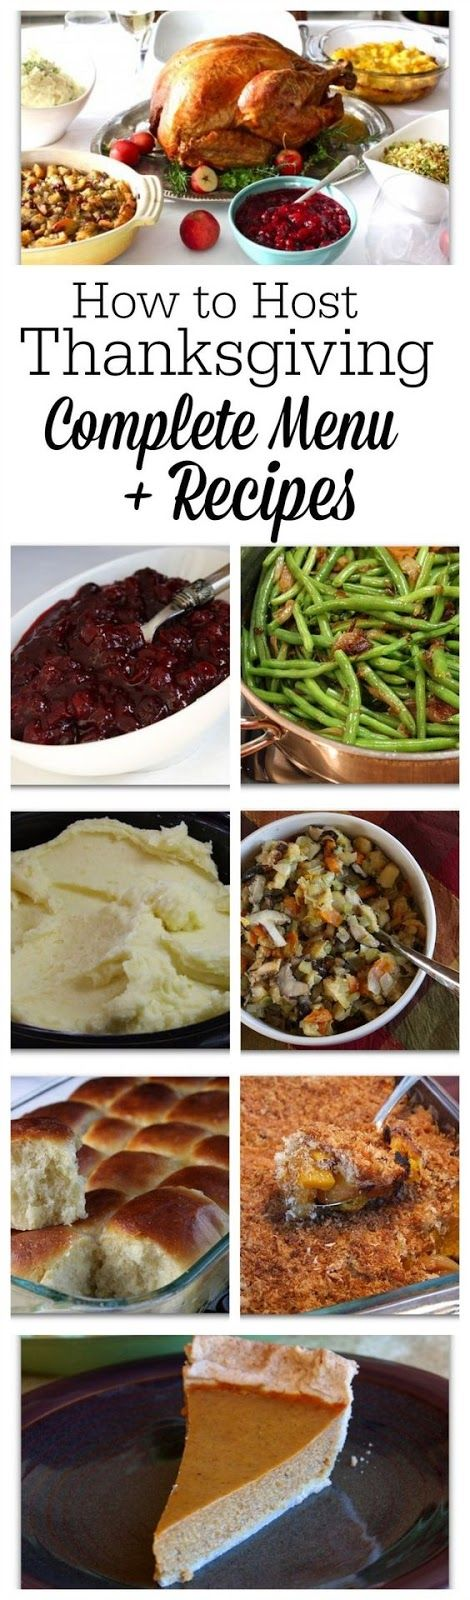 Thanksgiving ideas food and decor!